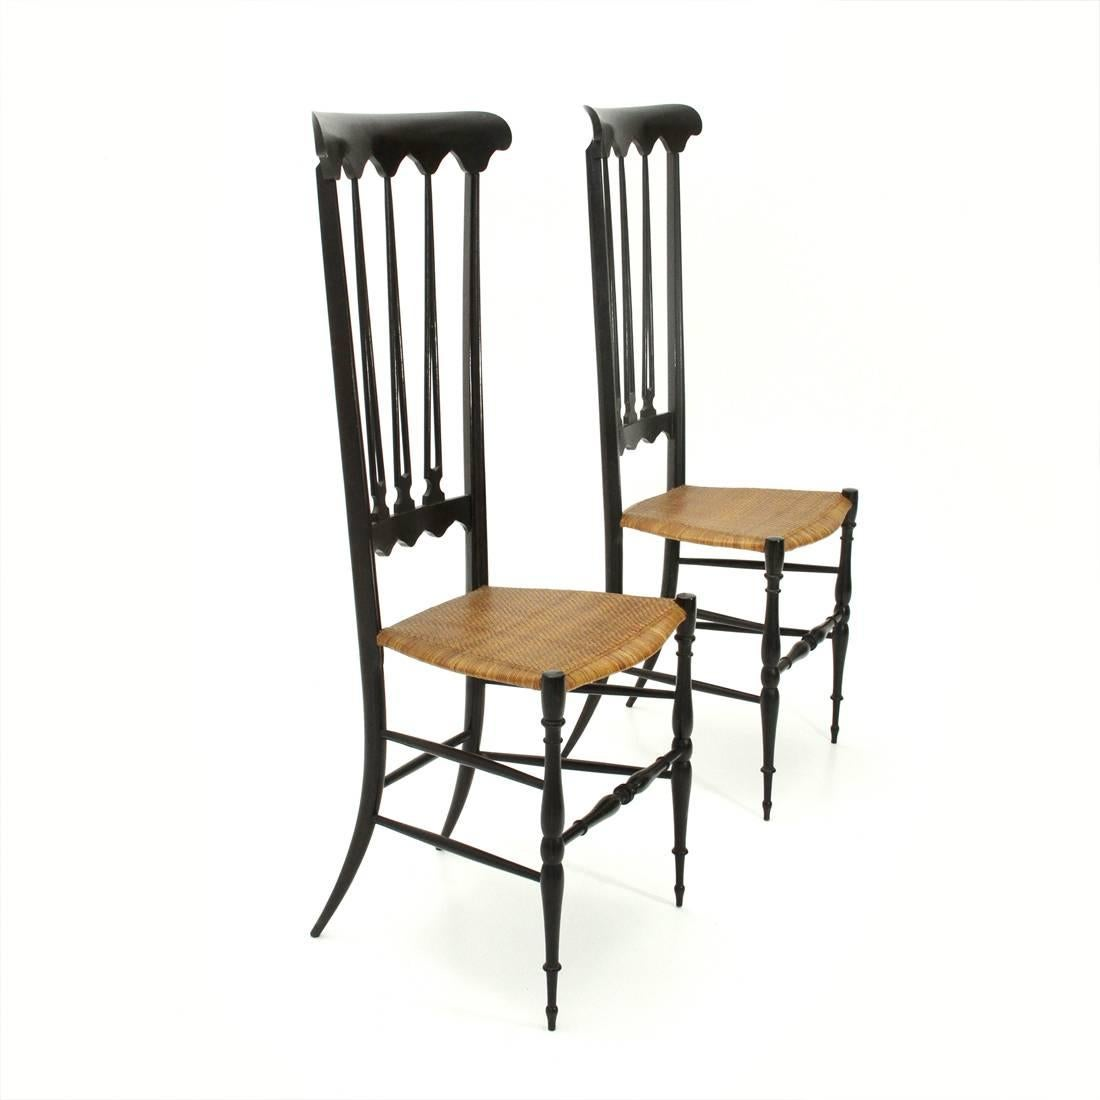 Two Chairs Produced In The 1950s By The Company Sanguineti And Zunino Di  Chiavari. Ebonized